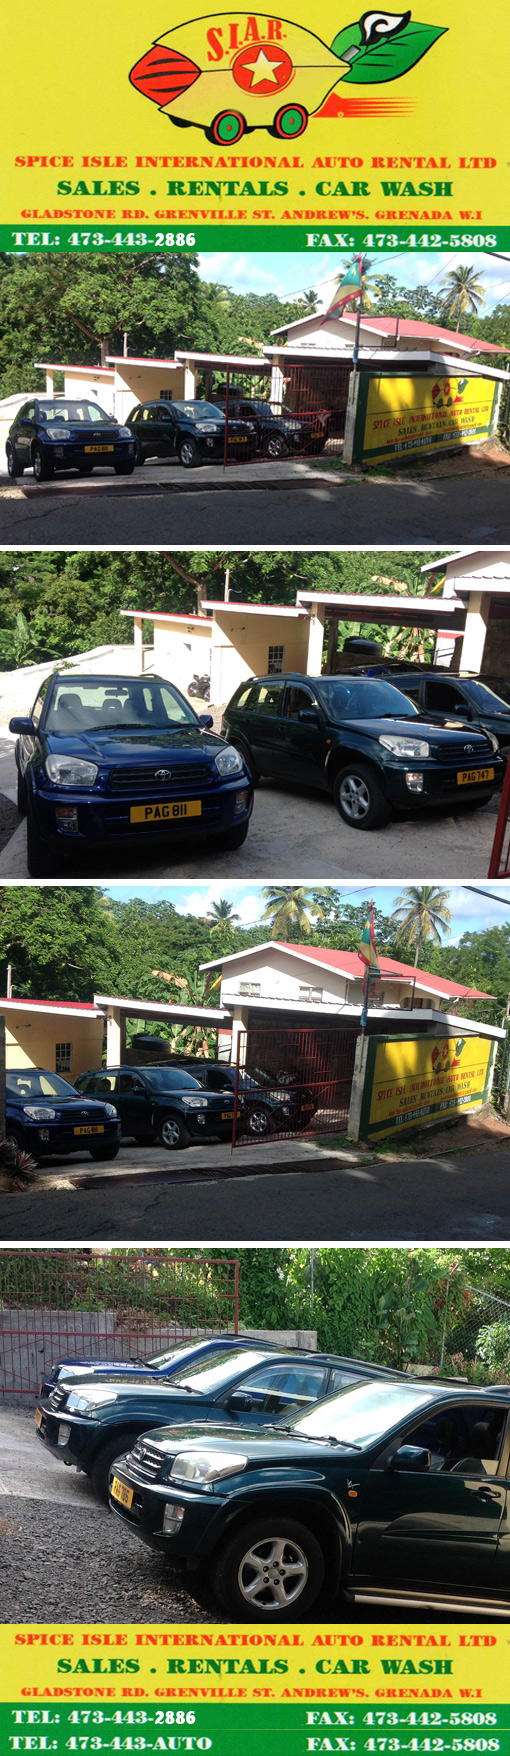 SIAR_PAGE_Grenada_Car_Rental